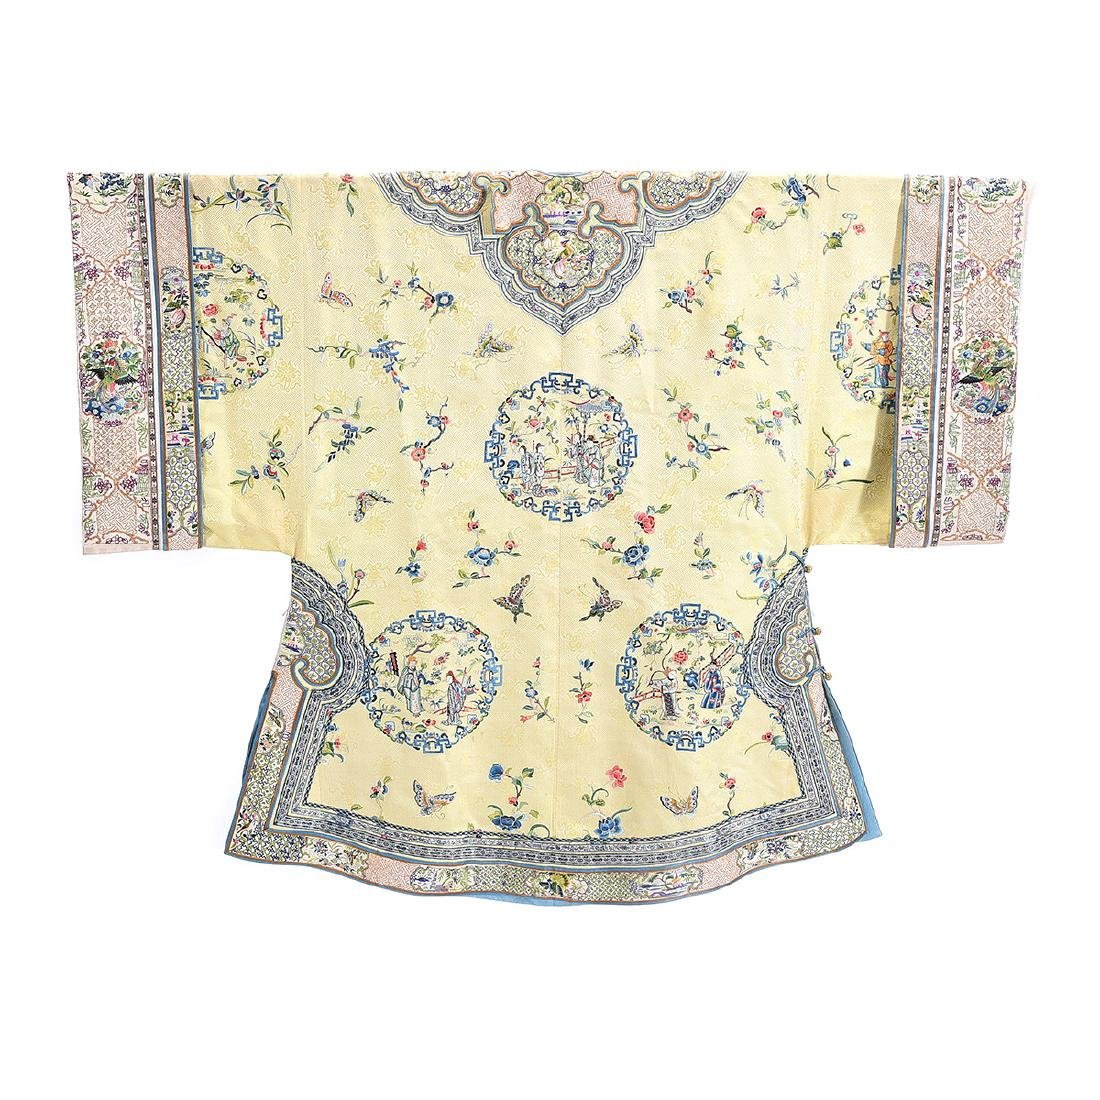 Embroidered Silk Yellow Ground Lady's Robe - 7